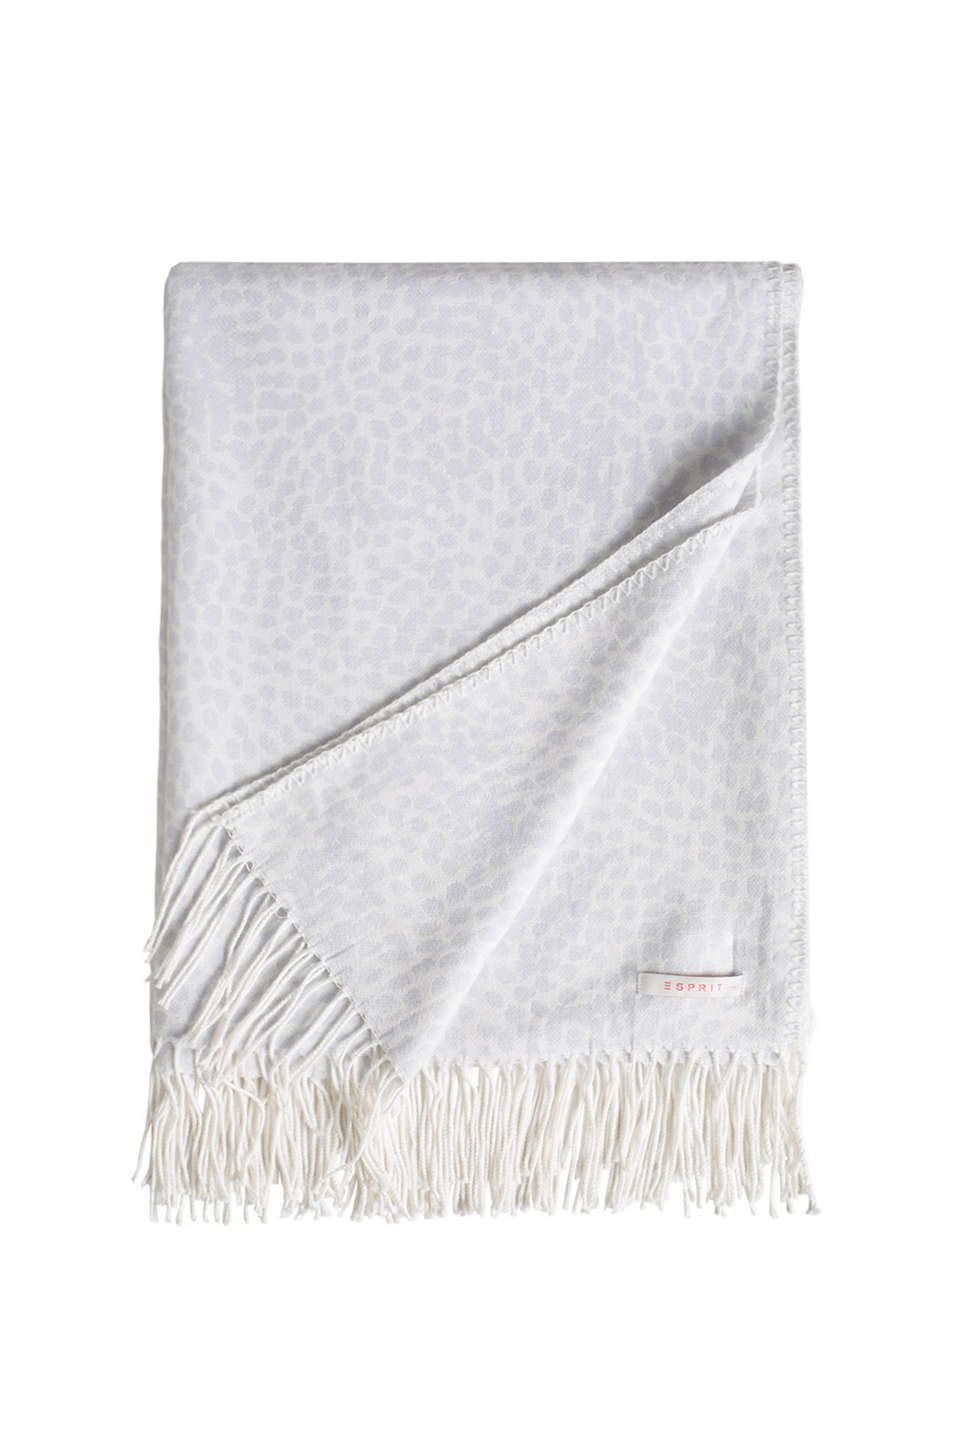 Esprit - Soft woven reversible blanket with fringing